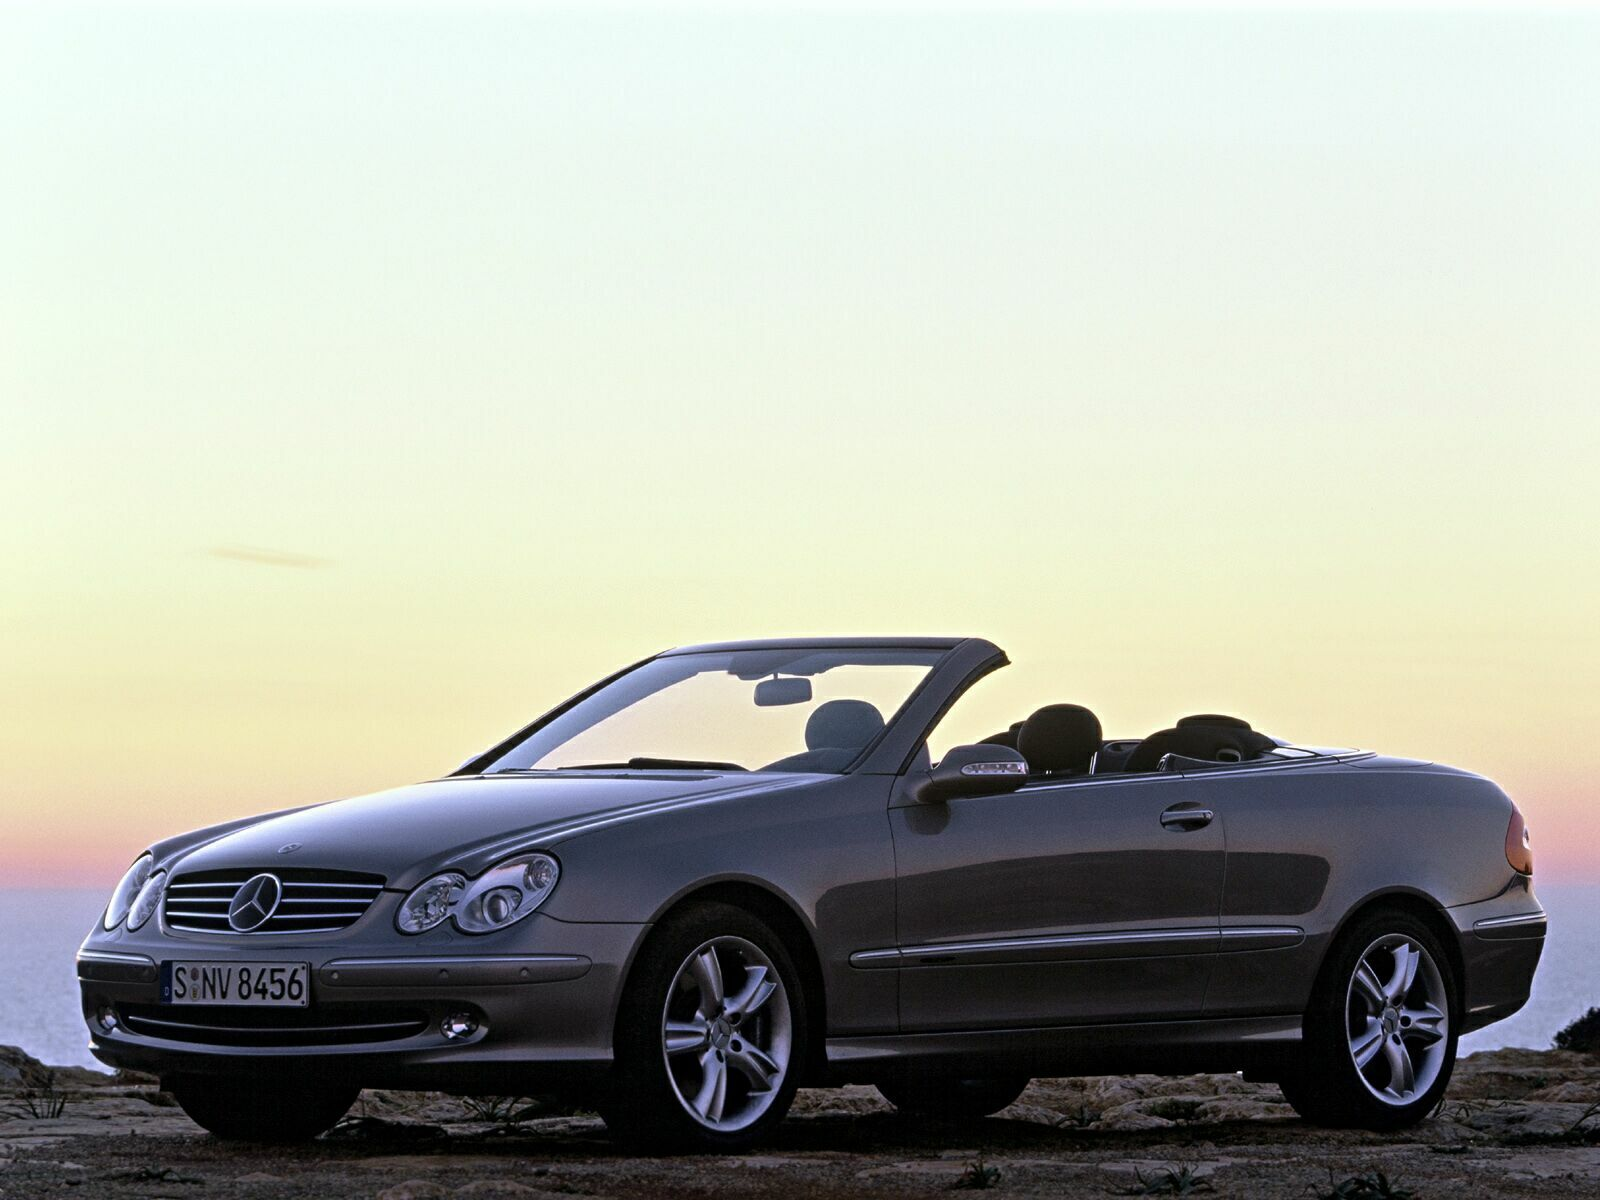 mercedes benz clk cabriolet picture 11087 mercedes benz photo gallery. Black Bedroom Furniture Sets. Home Design Ideas